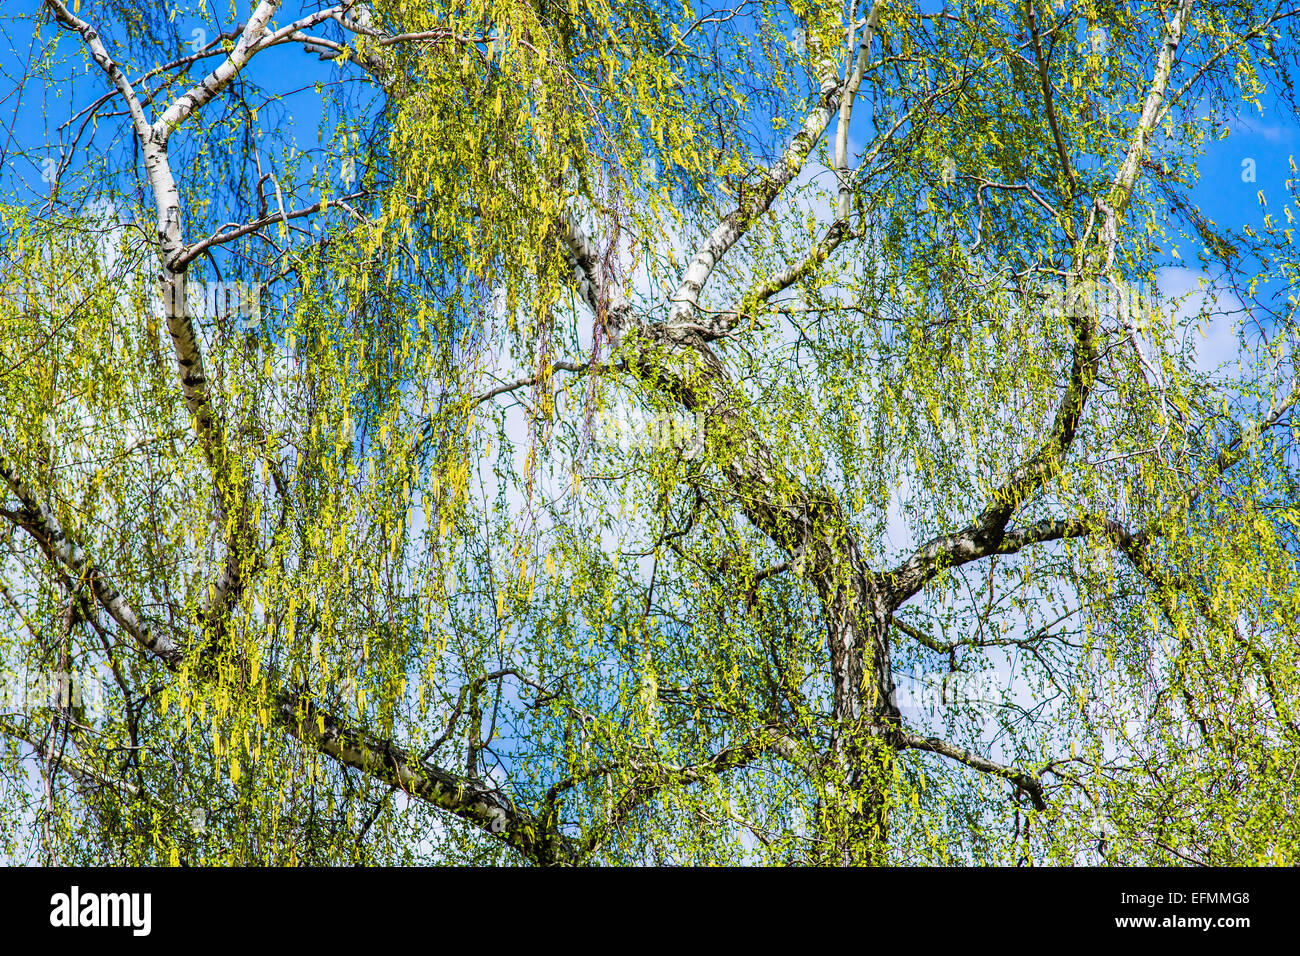 Blooming birch tree in the springtime. The poetry of life rebirth. - Stock Image